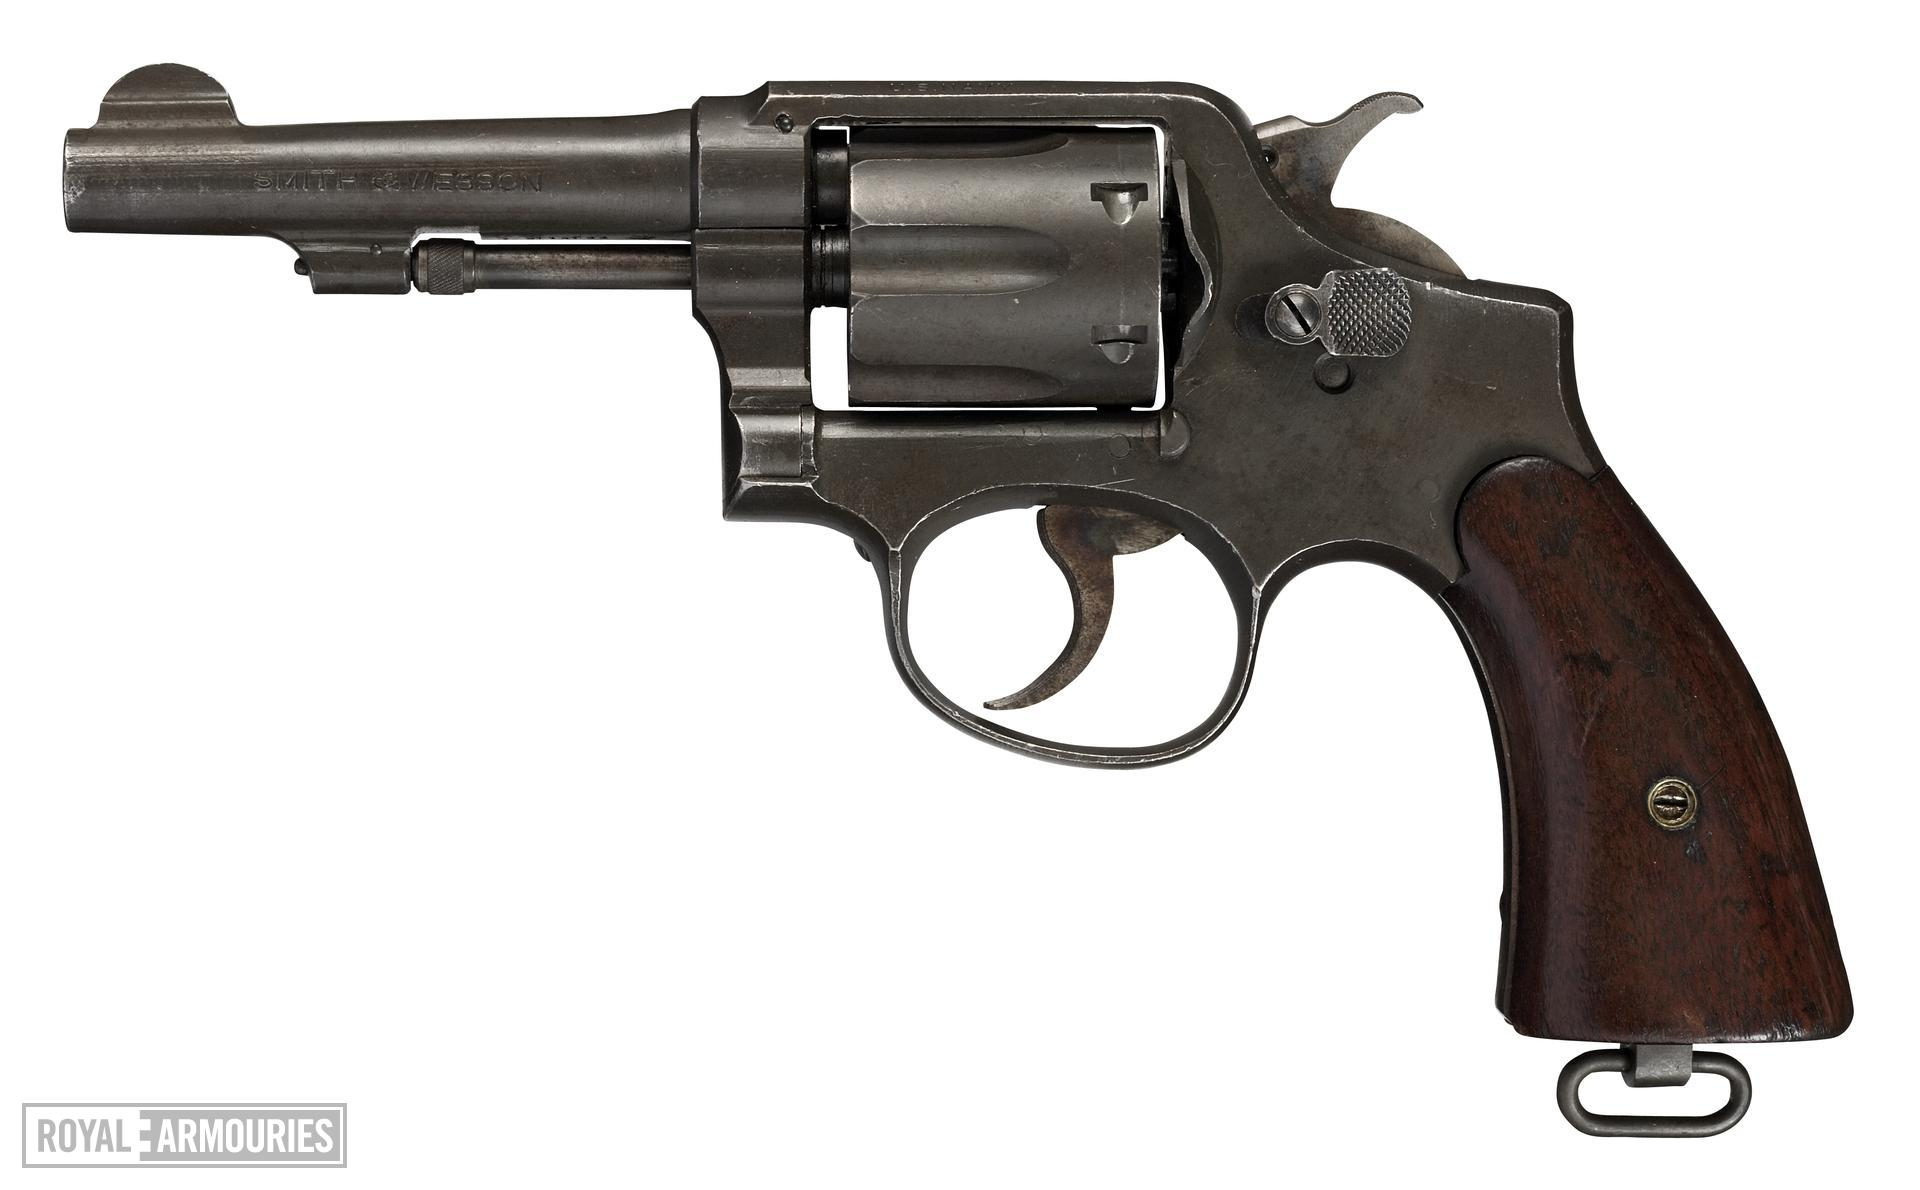 Centrefire six-shot revolver - Smith and Wesson Victory Model, Military and Police